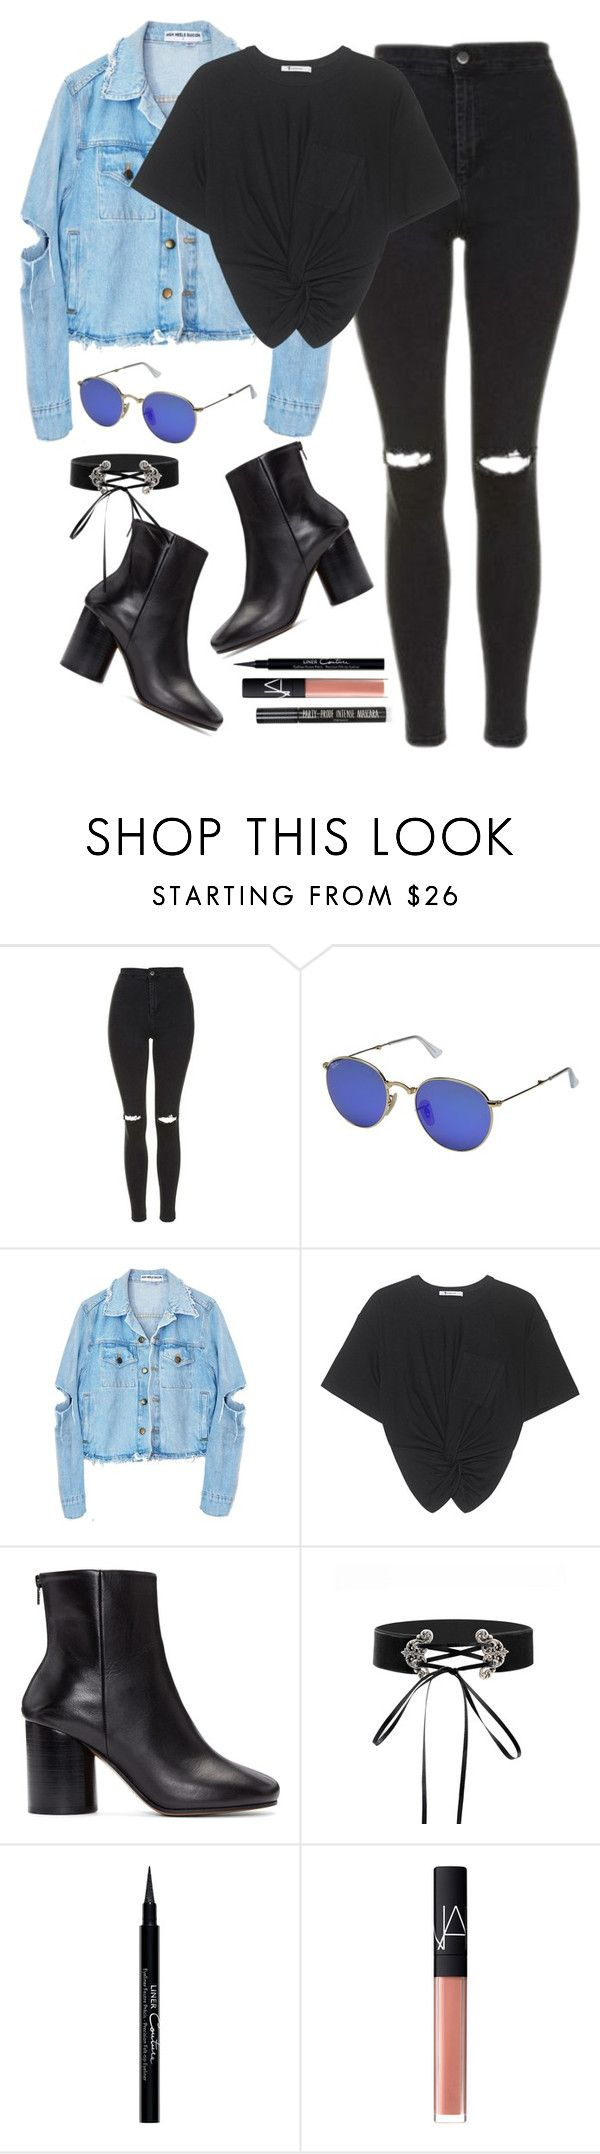 """Başlıksız #1385"" by zeynep-yagmur ❤ liked on Polyvore featuring Topshop, Ray-Ban, T By Alexander Wang, Maison Margiela, Givenchy and NARS Cosmetics"